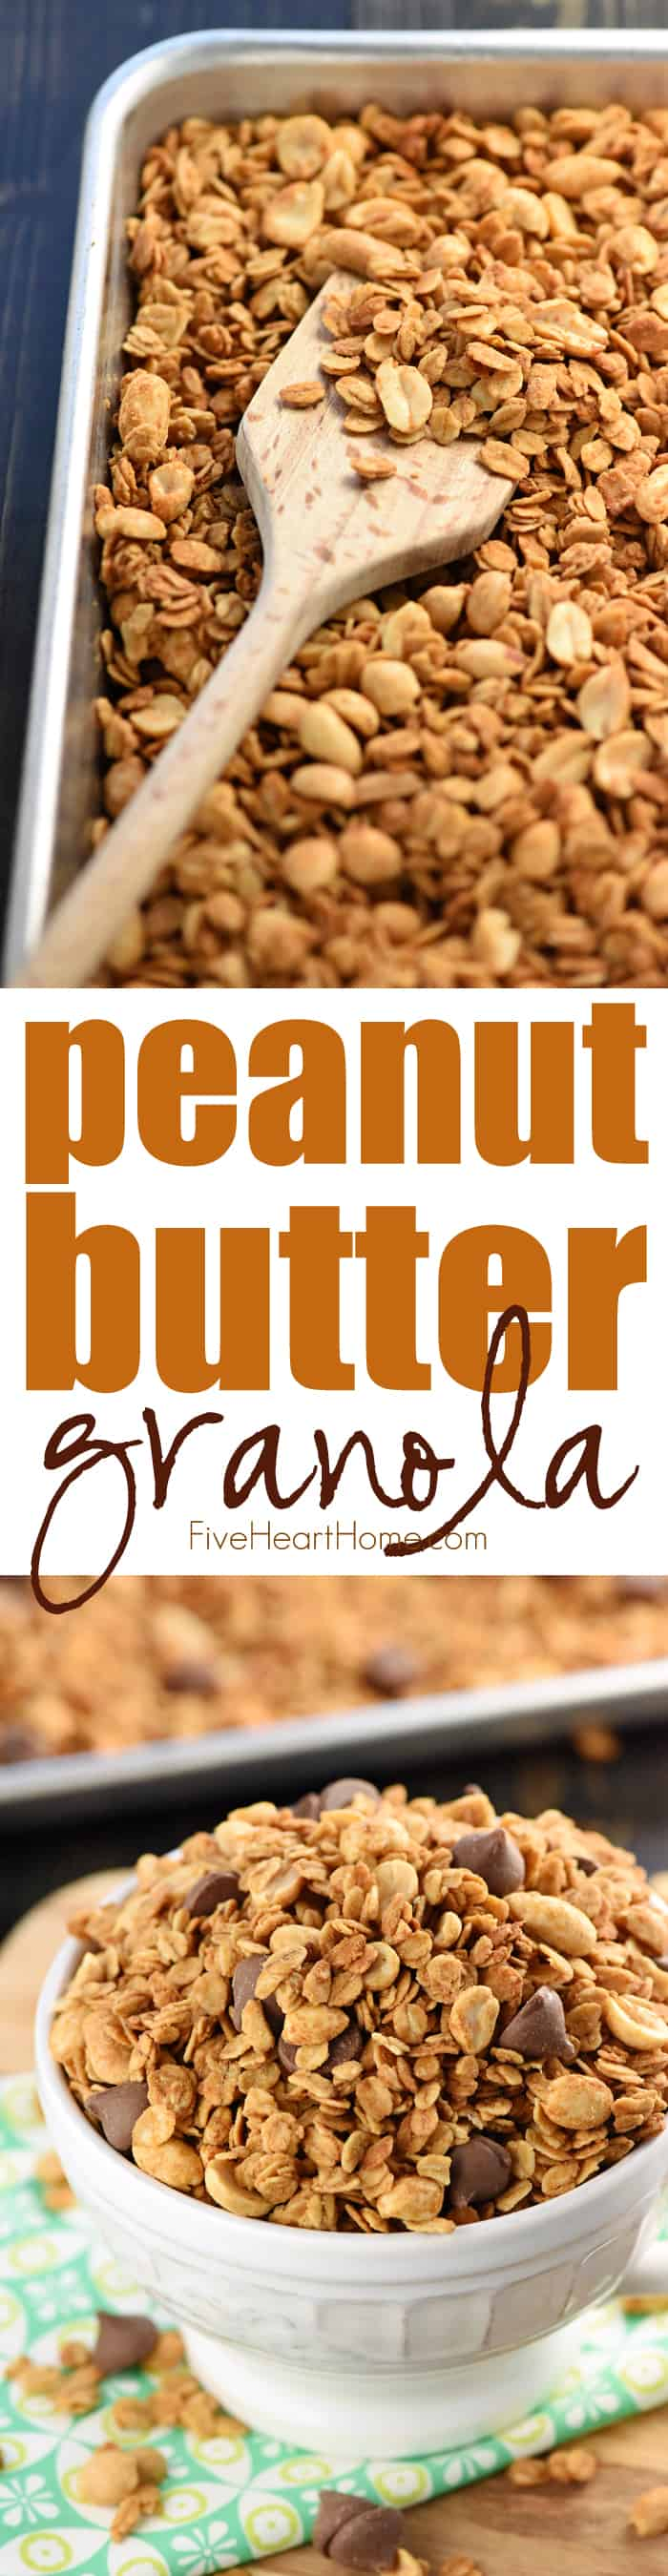 5-Ingredient Peanut Butter Granola ~ a quick and easy recipe that makes a wholesome, yummy breakfast, snack, or even dessert, dressed up with a handful of chocolate chips! | FiveHeartHome.com